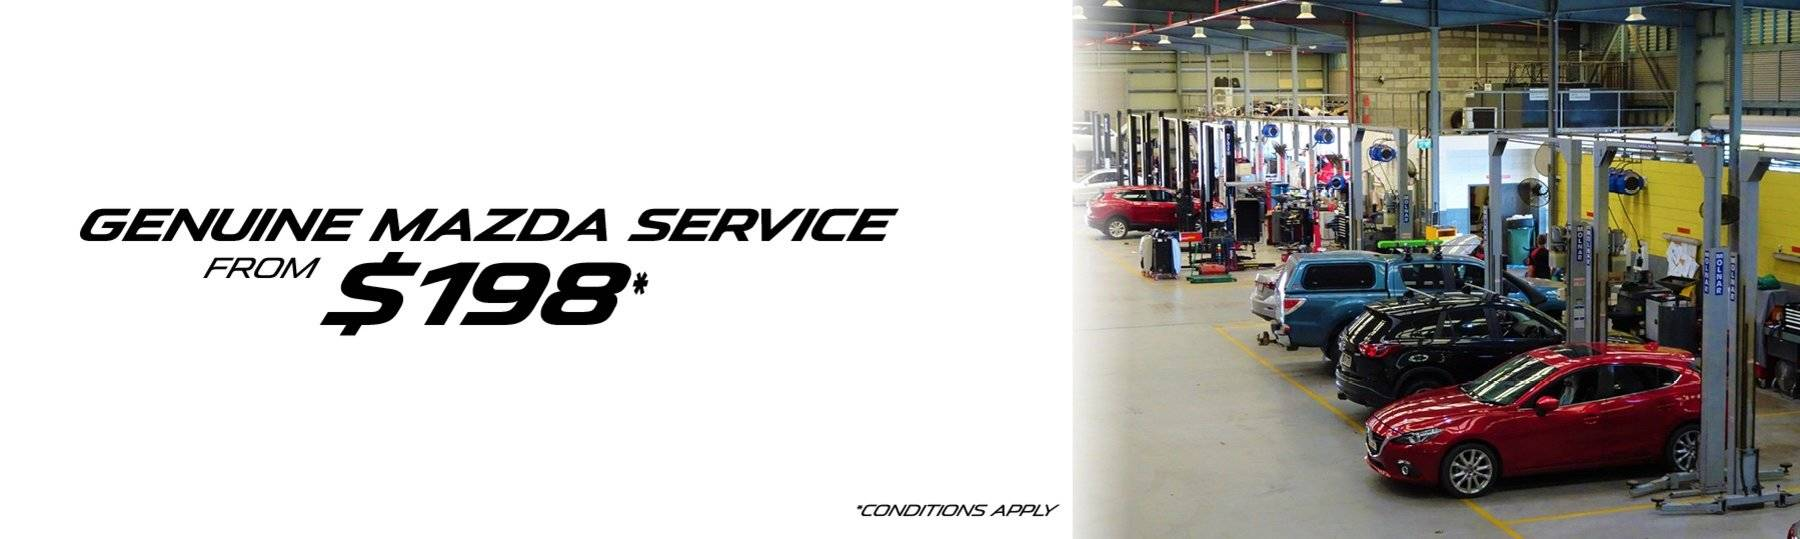 198 special service offer